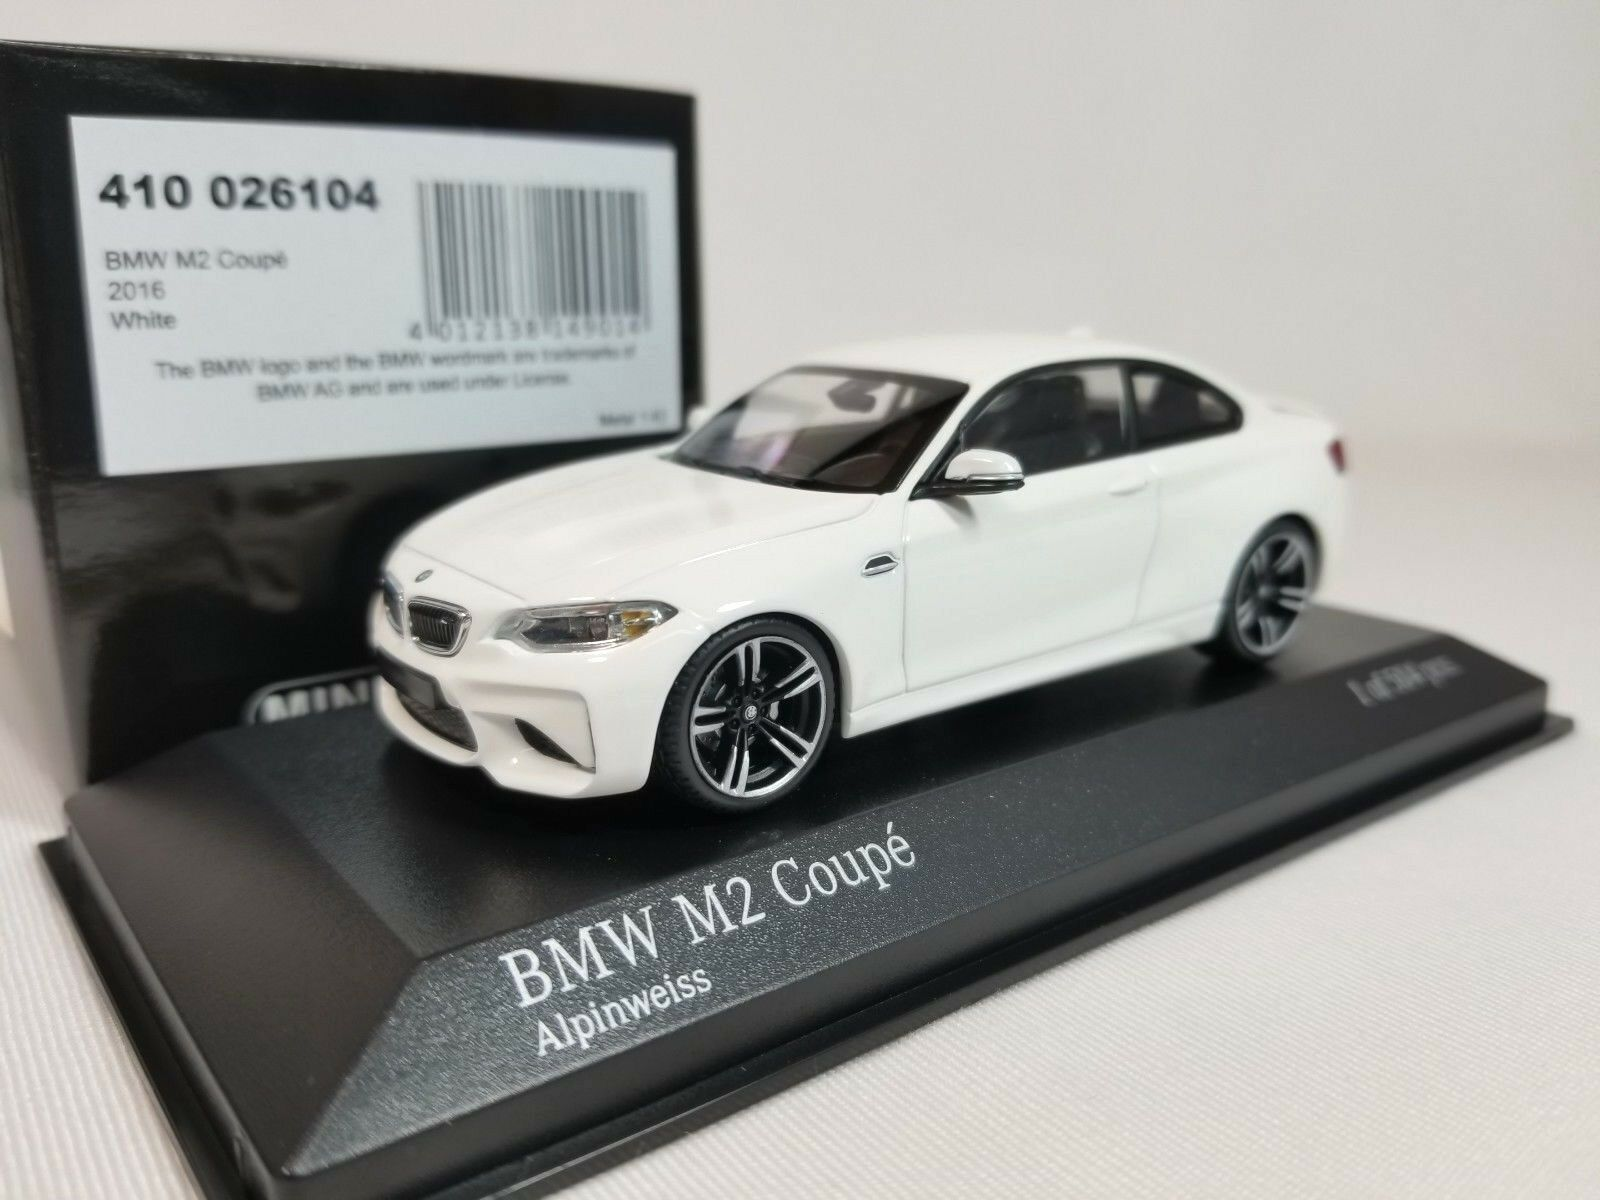 1 43 Minichamps BMW M2 Coupe F87 2016 M 2 Series F22 Twin Turbo I6 biancao Alpino